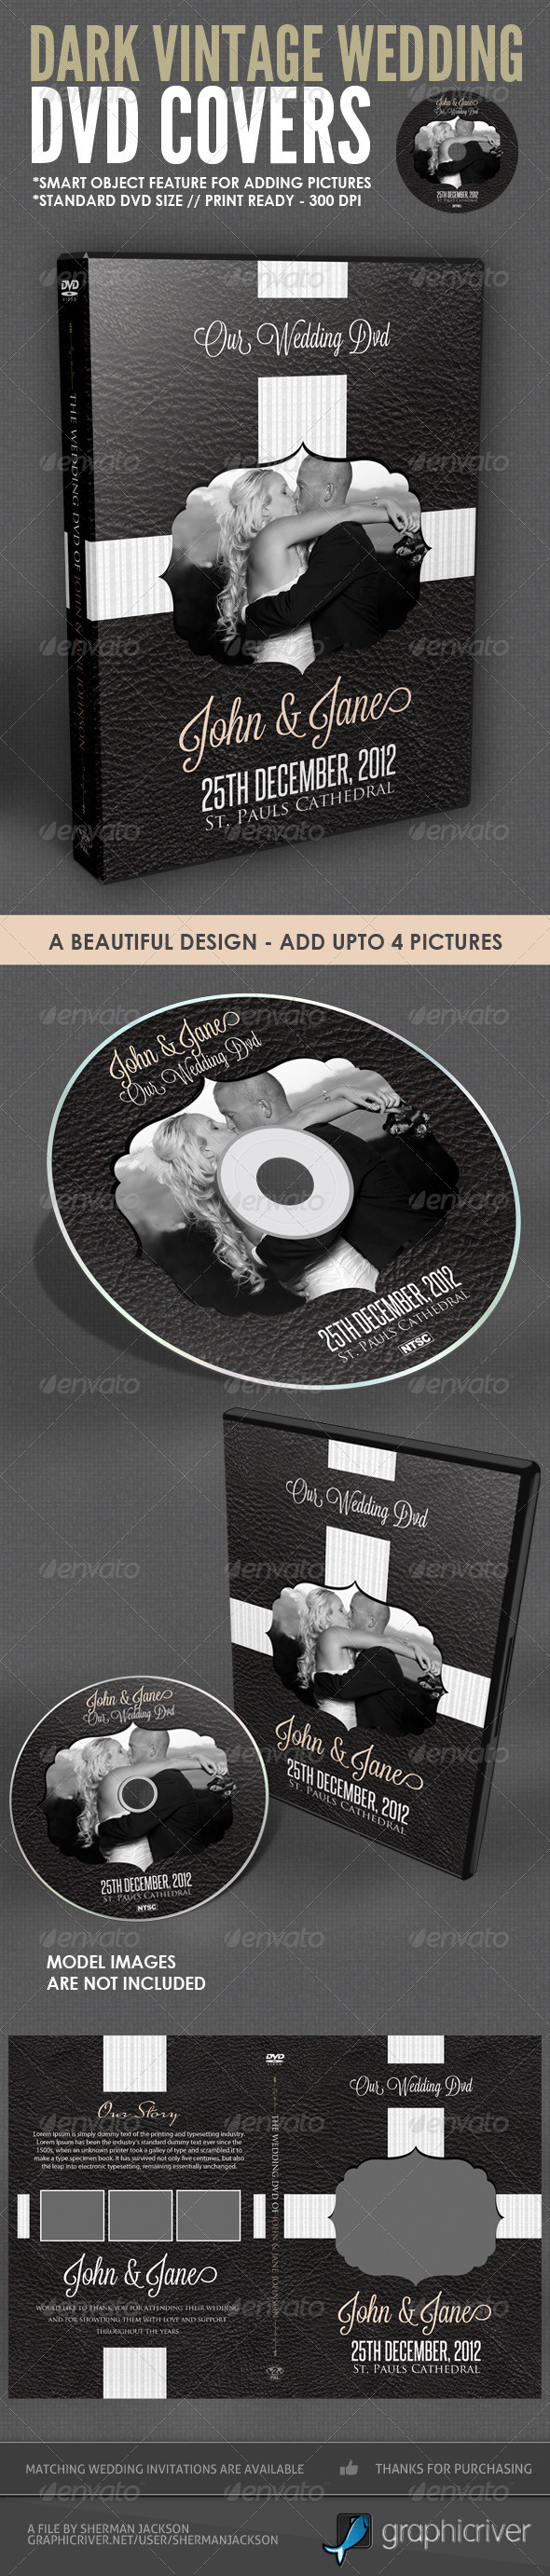 GraphicRiver Dark Vintage Wedding DVD Cover Template 2243486